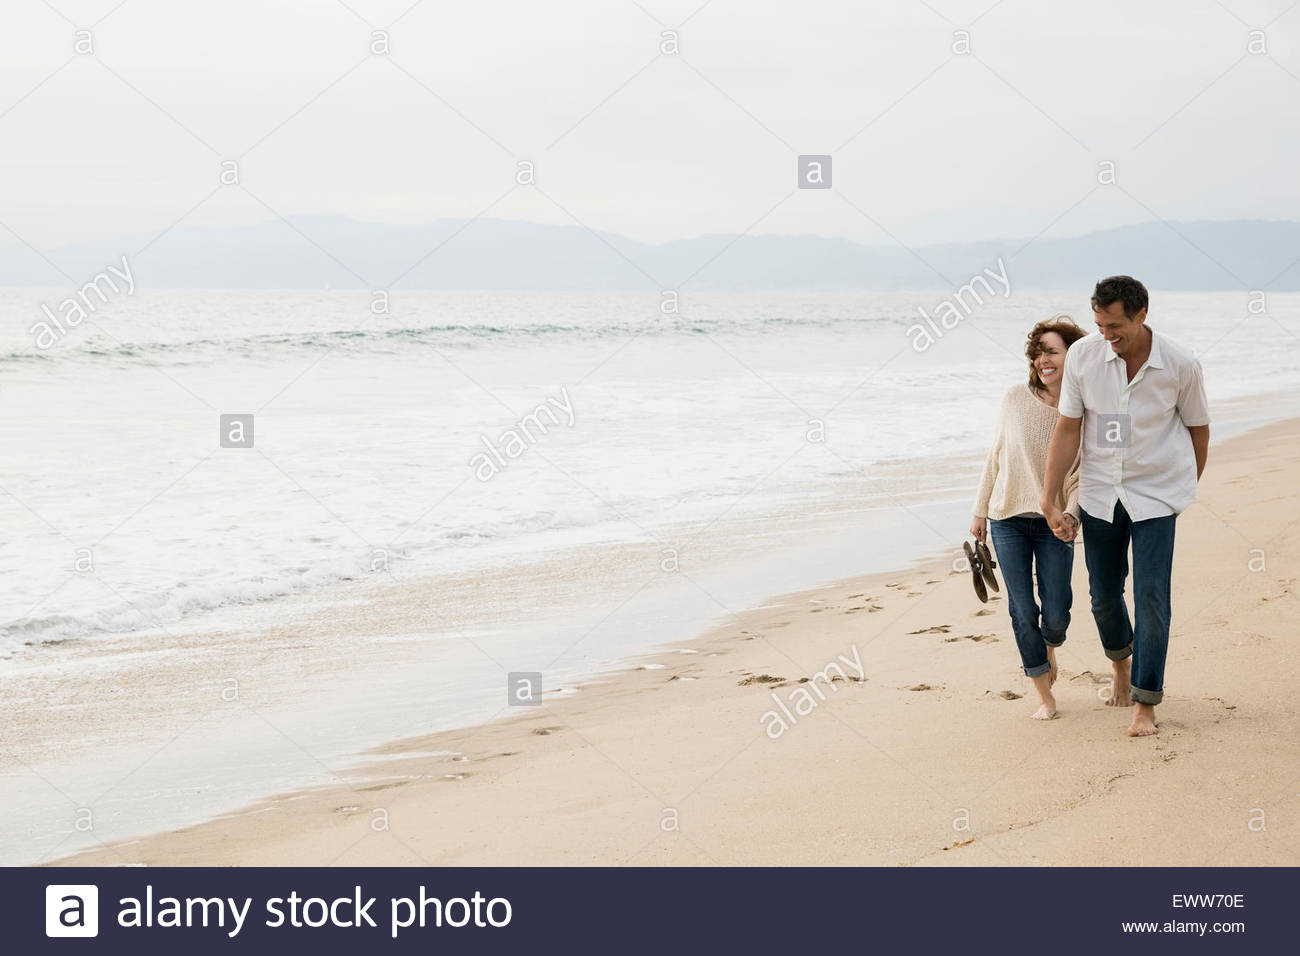 Couple holding hands and walking on beach - Stock Image